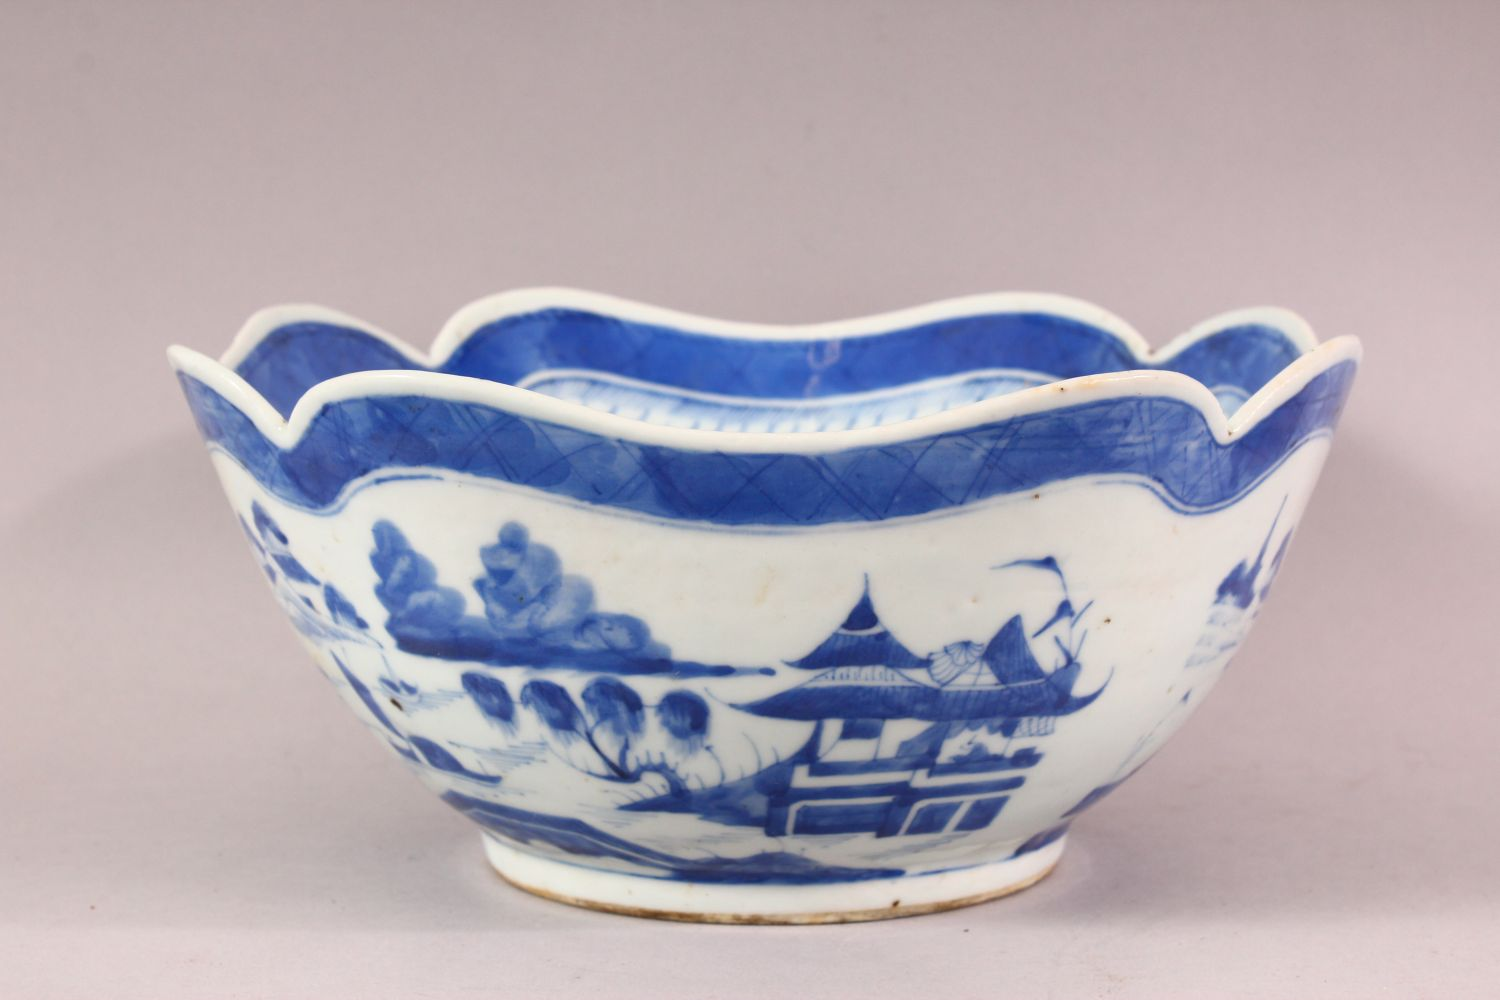 AN 18TH / 19TH CENTURY CHINESE BLUE & WHITE PORCELAIN BOWL, of quatrefoil form, decorated with - Image 2 of 6